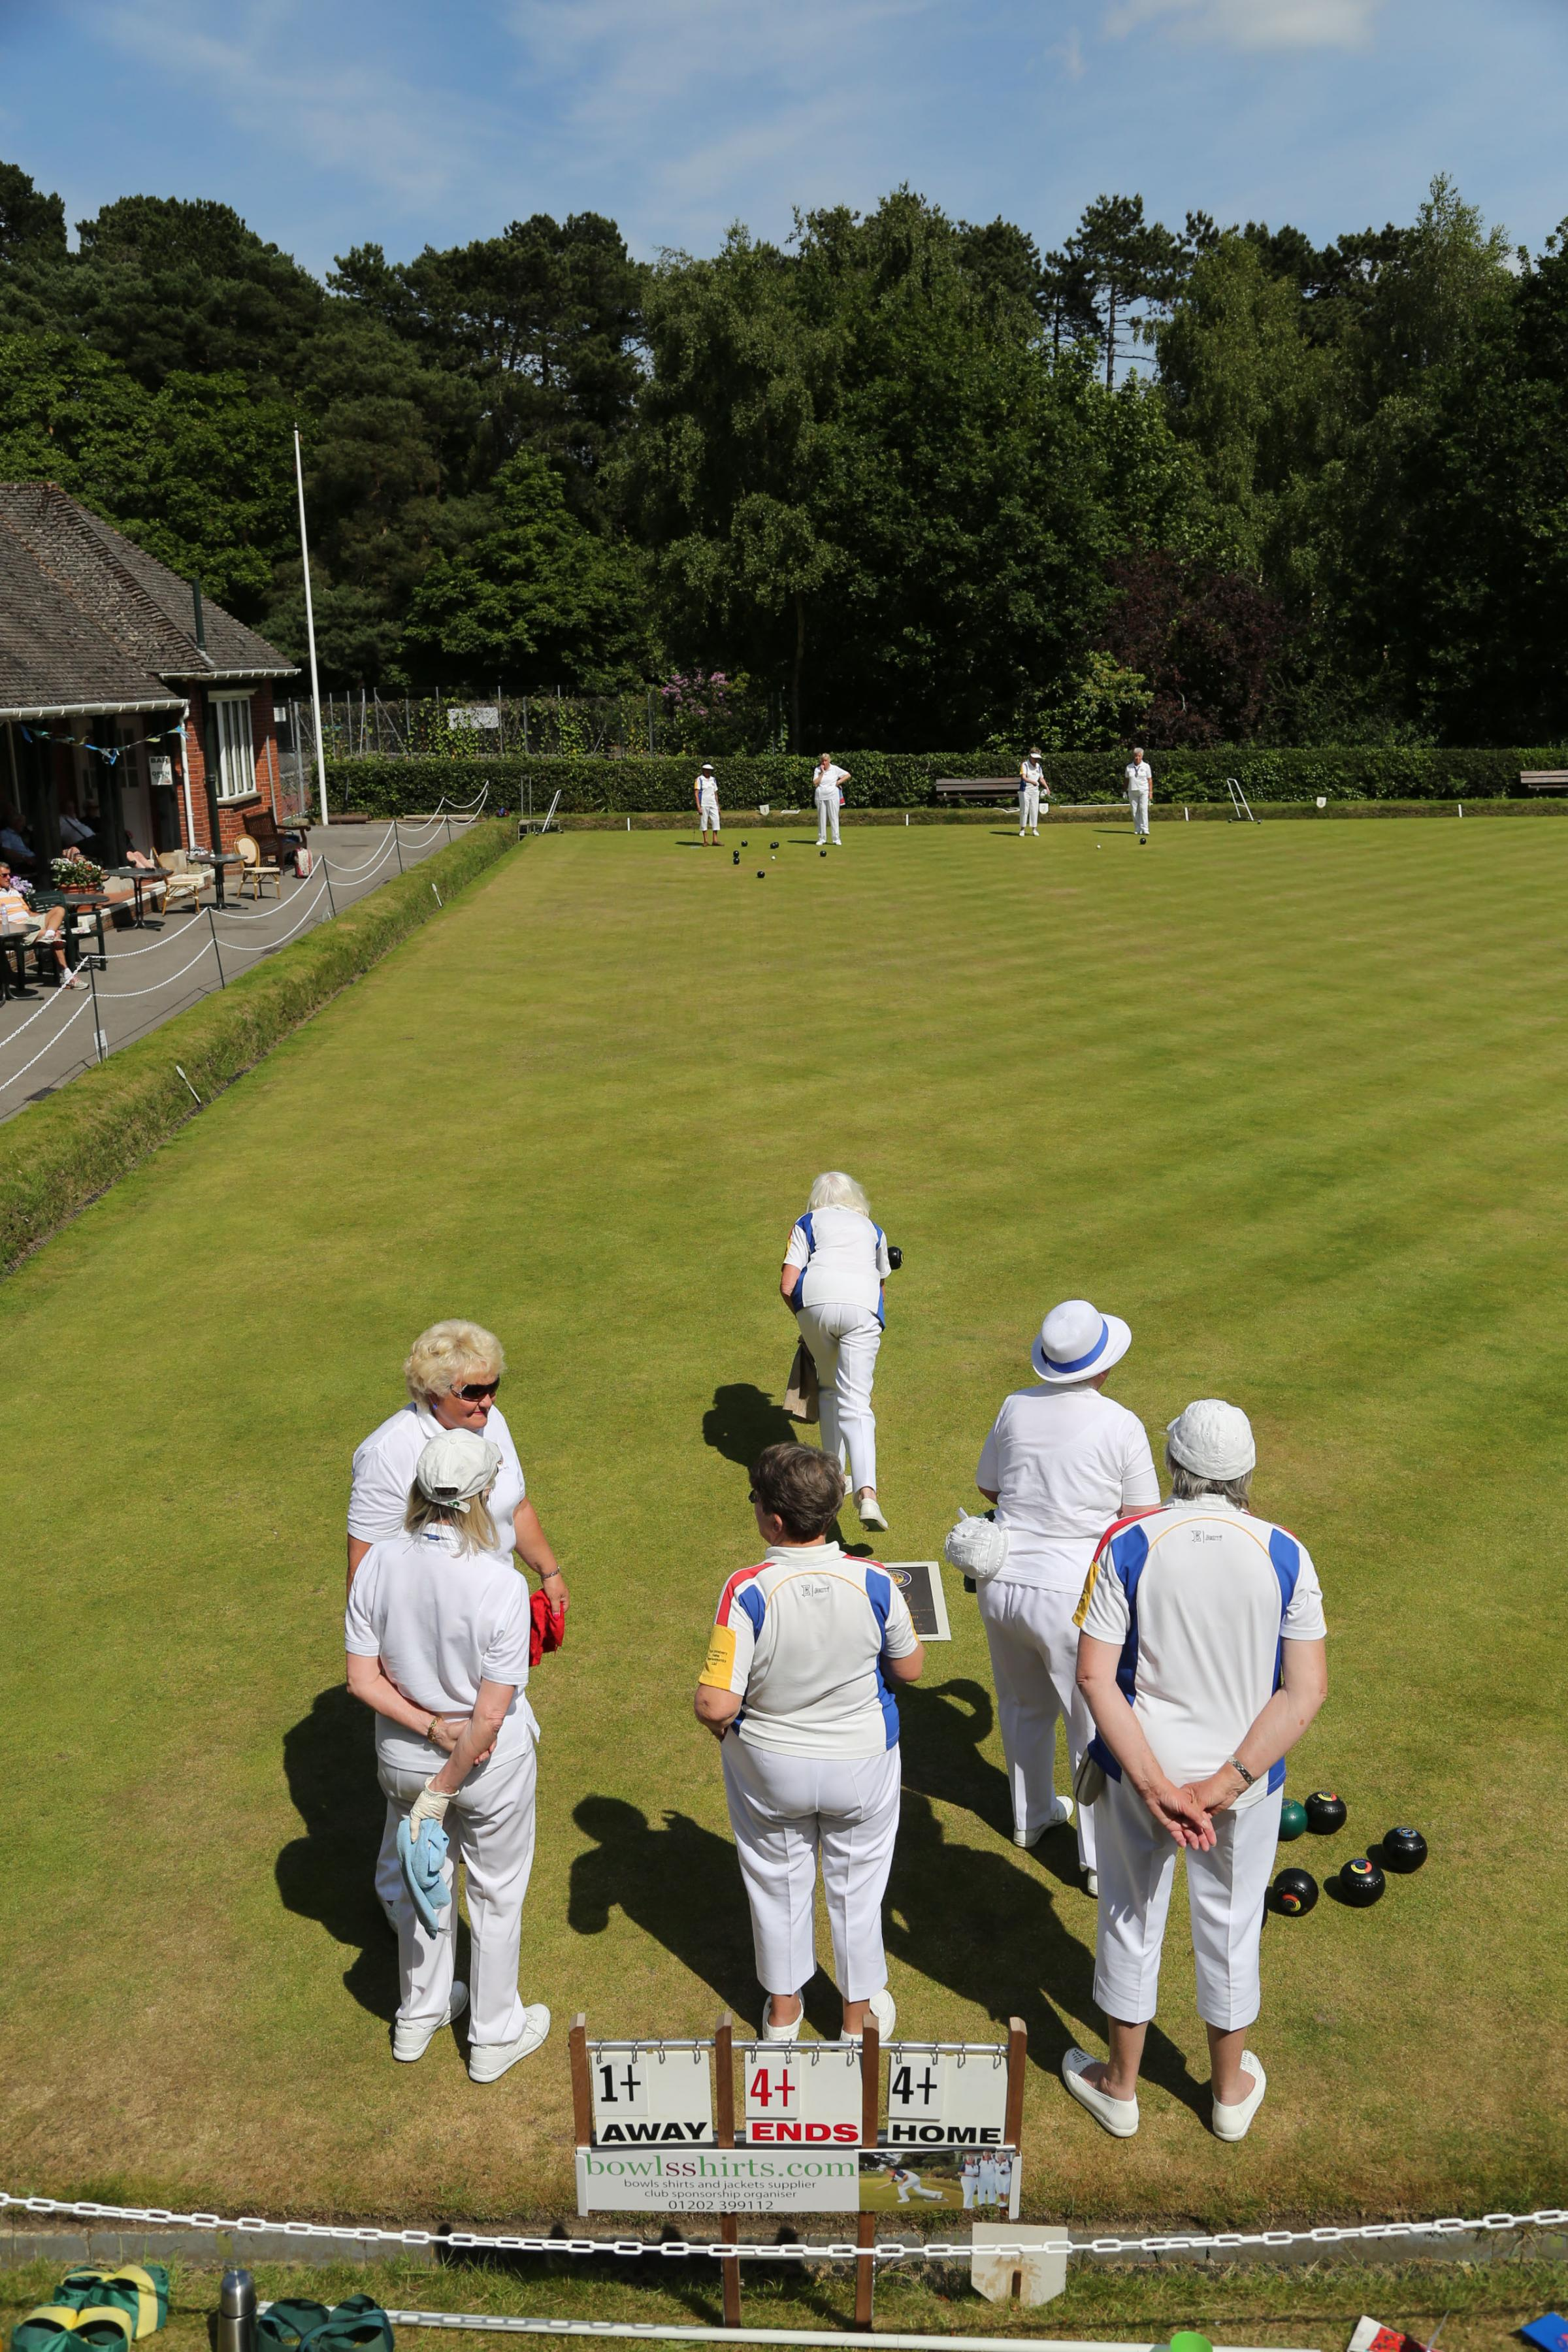 PICTURESQUE: Bournemouth Bowls Club's Meyrick Park headquarters